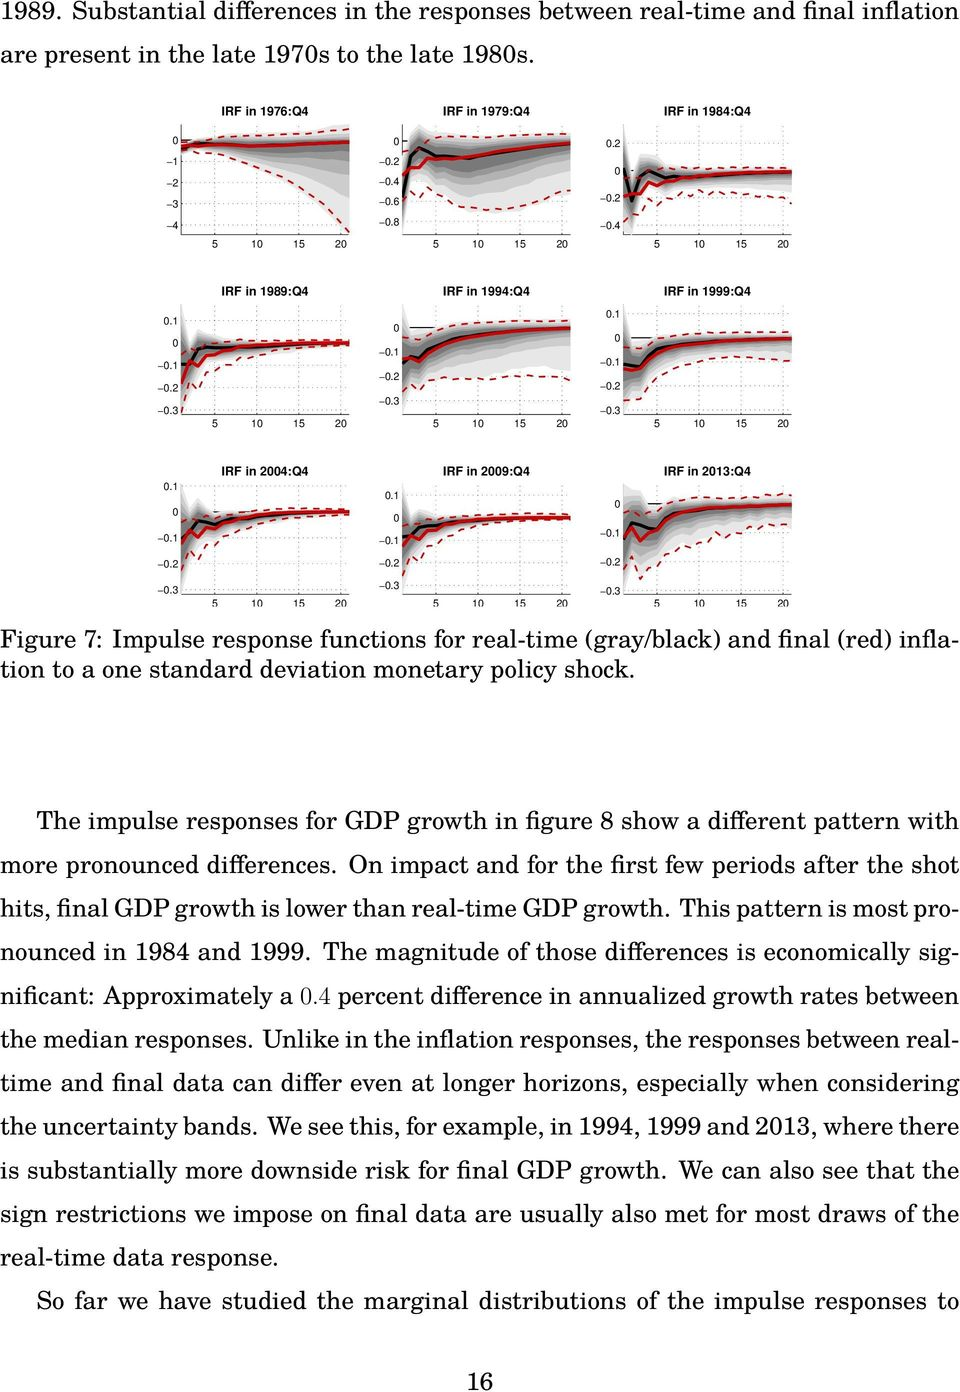 The impulse responses for GDP growth in figure 8 show a different pattern with more pronounced differences.